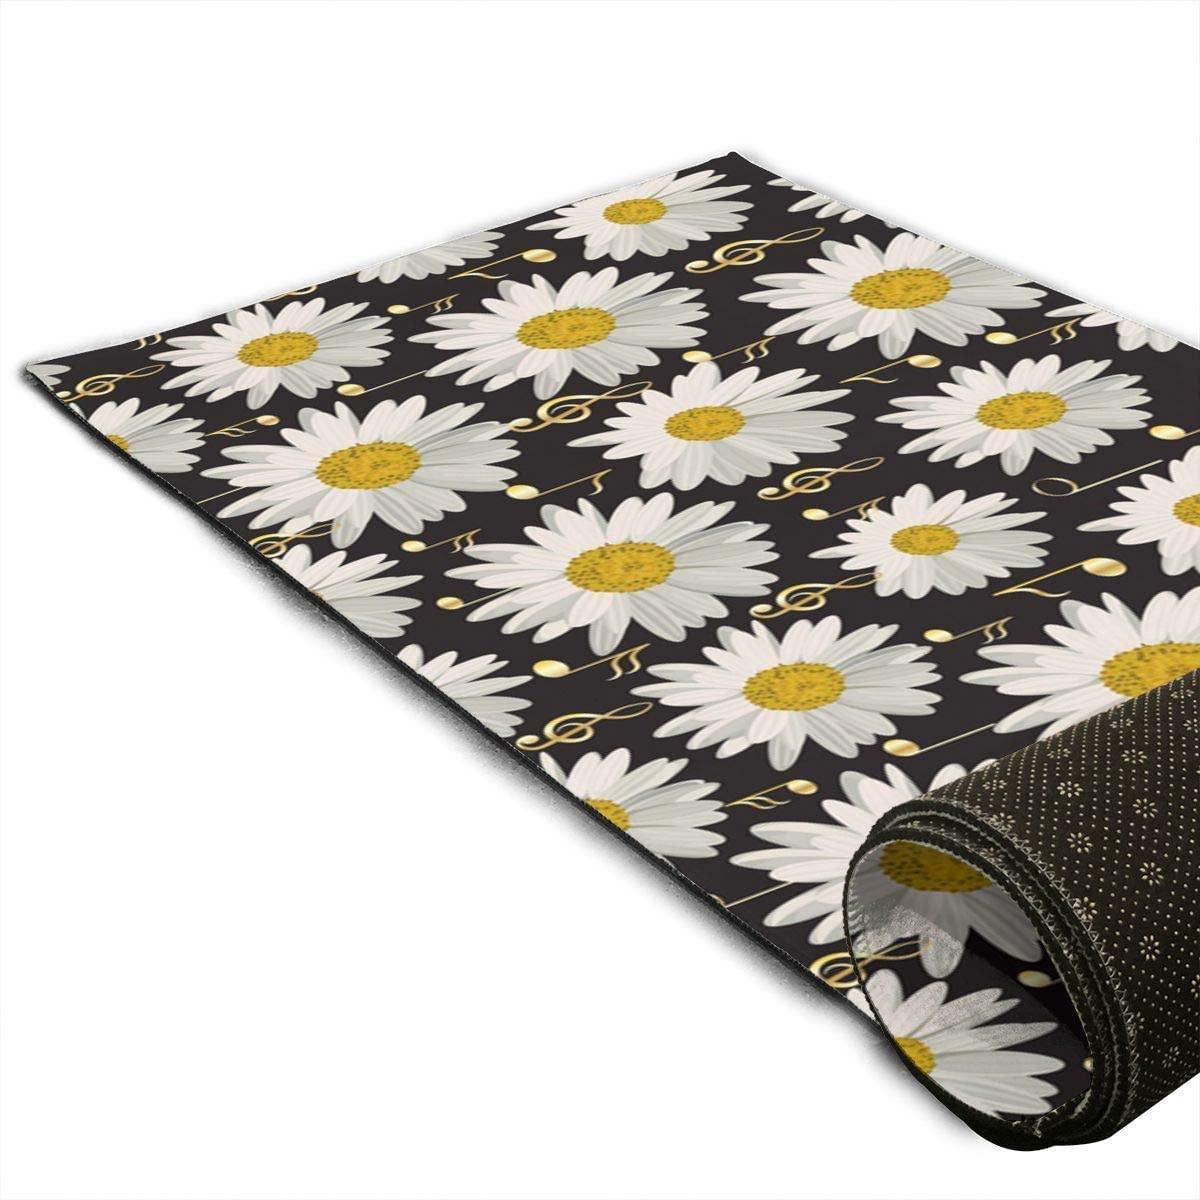 Granbey Yoga Mat Premium 5mm Ranking TOP10 Print Slip Non High material Extra Thick Exercise